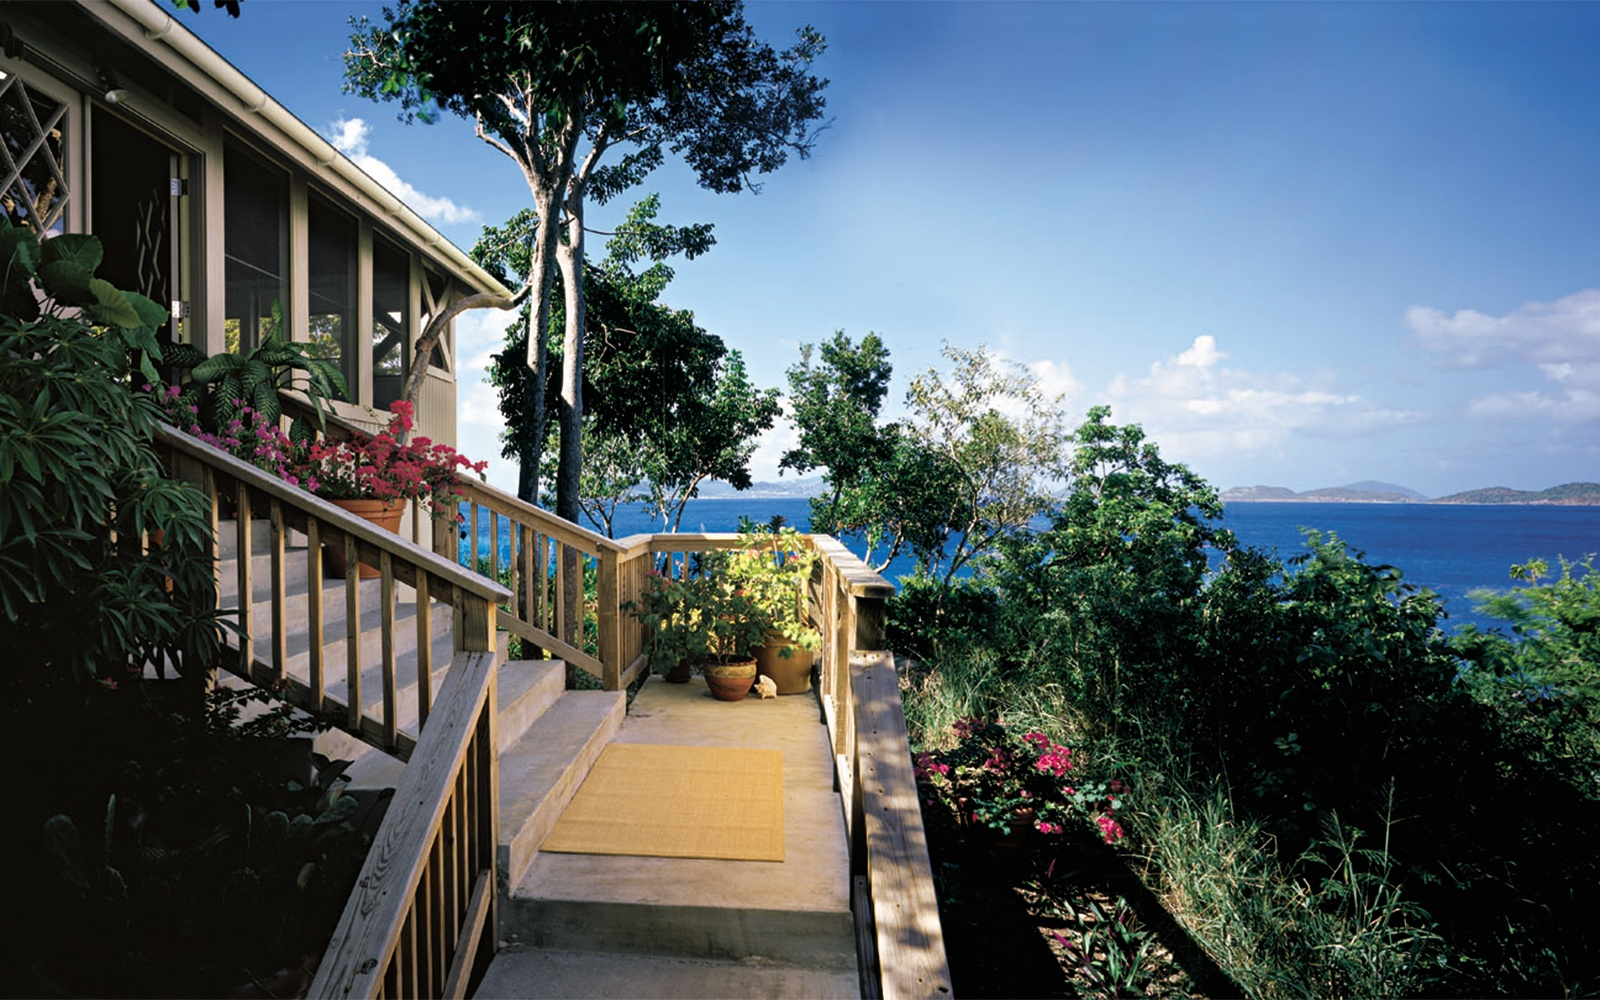 No. 15: Caneel Bay Resort, US Virgin Islands